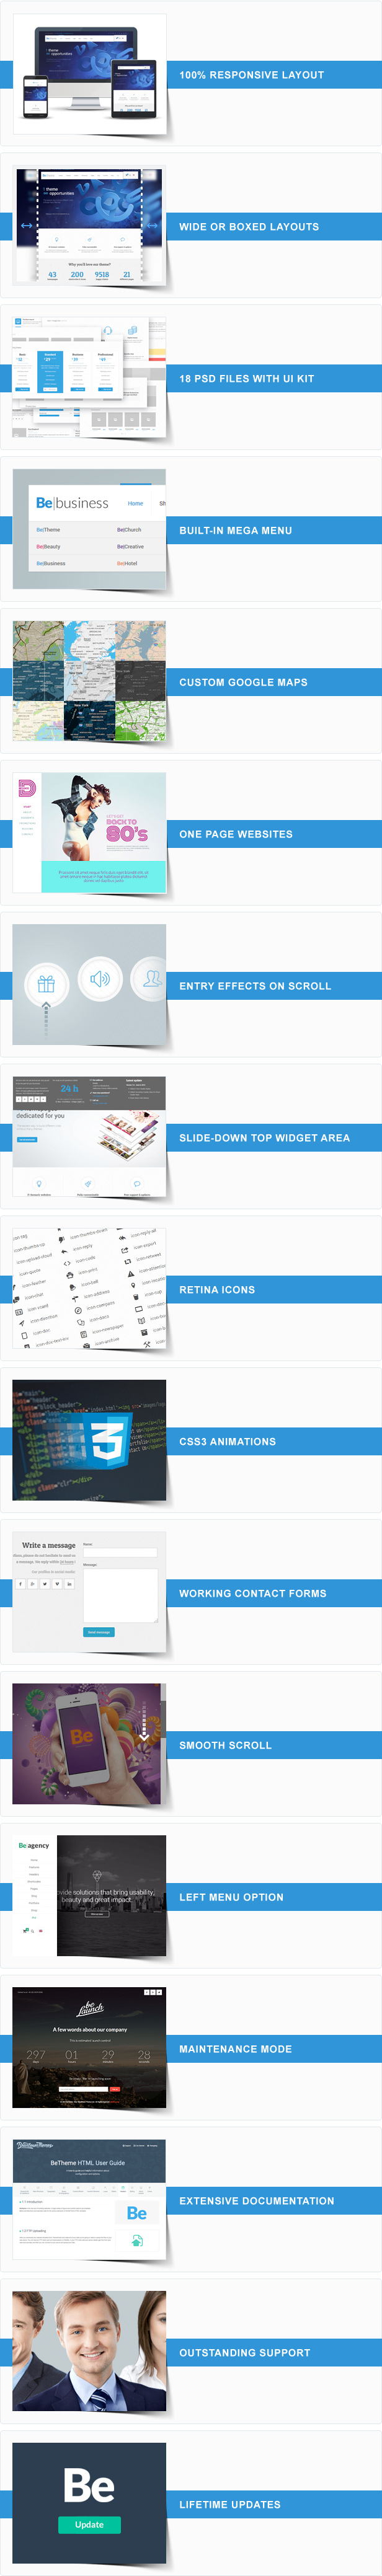 features new2 - BeTheme - HTML Responsive Multi-Purpose Template